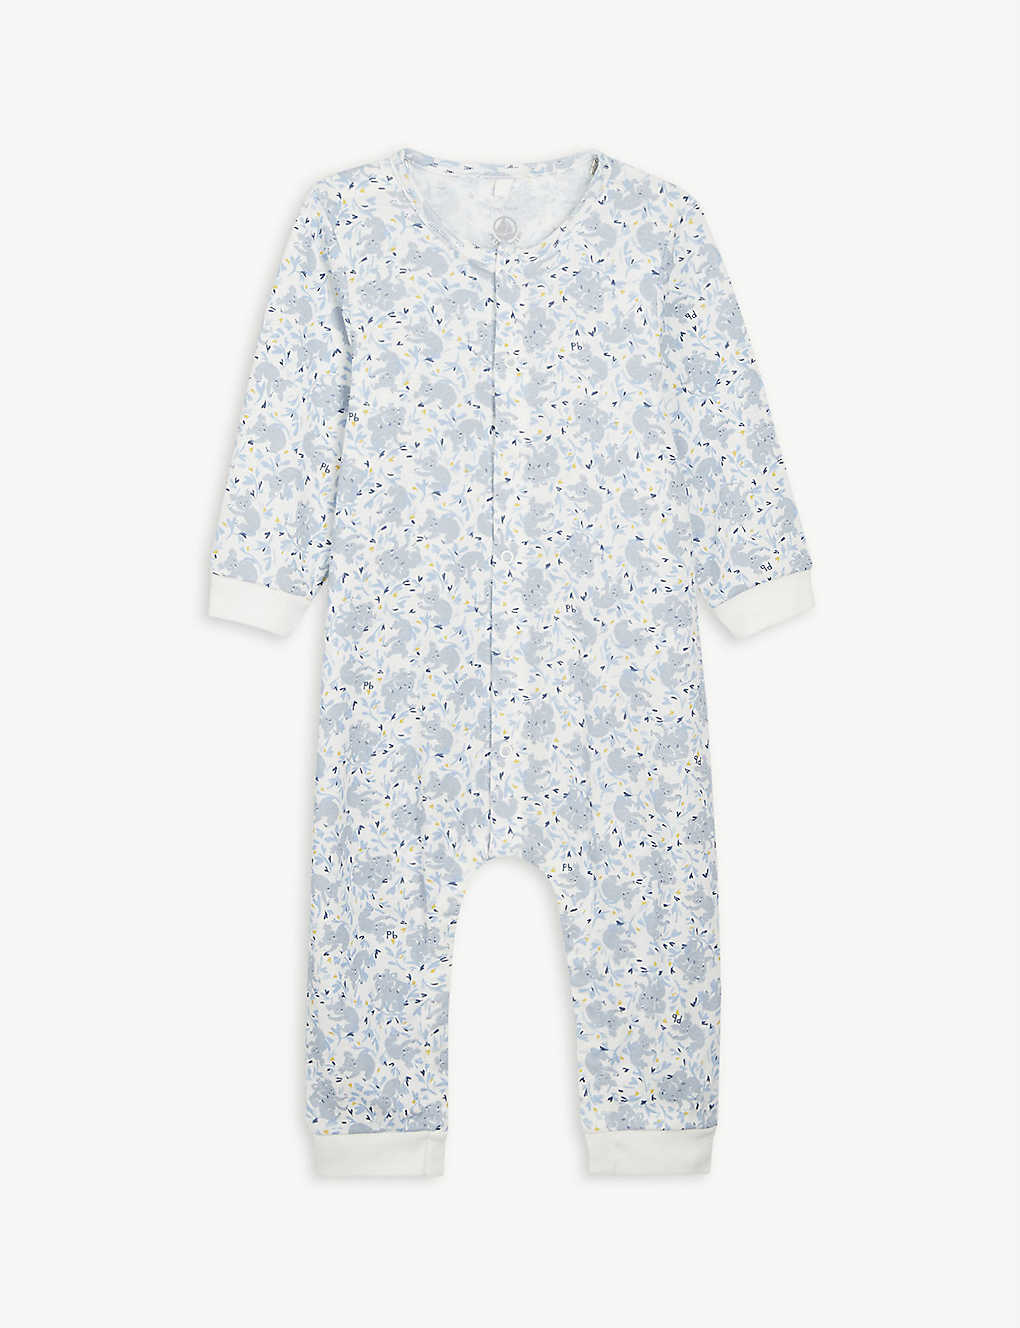 PETIT BATEAU: Koala cotton all-in-one 1-12 months